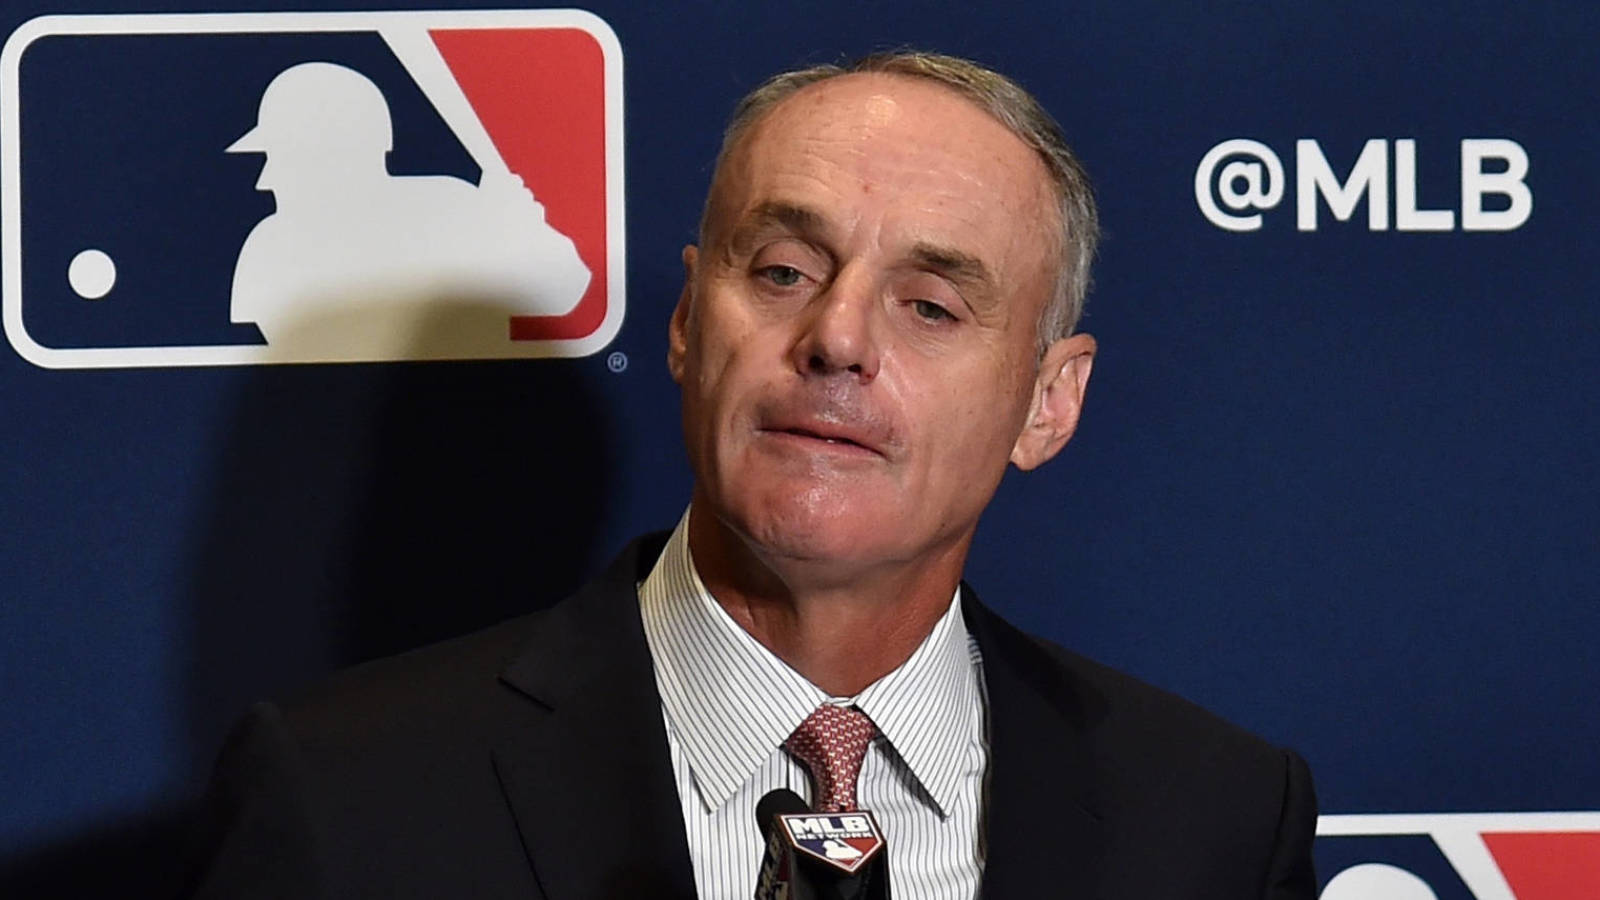 Rob Manfred said MLB could shut down due to coronavirus outbreaks ...